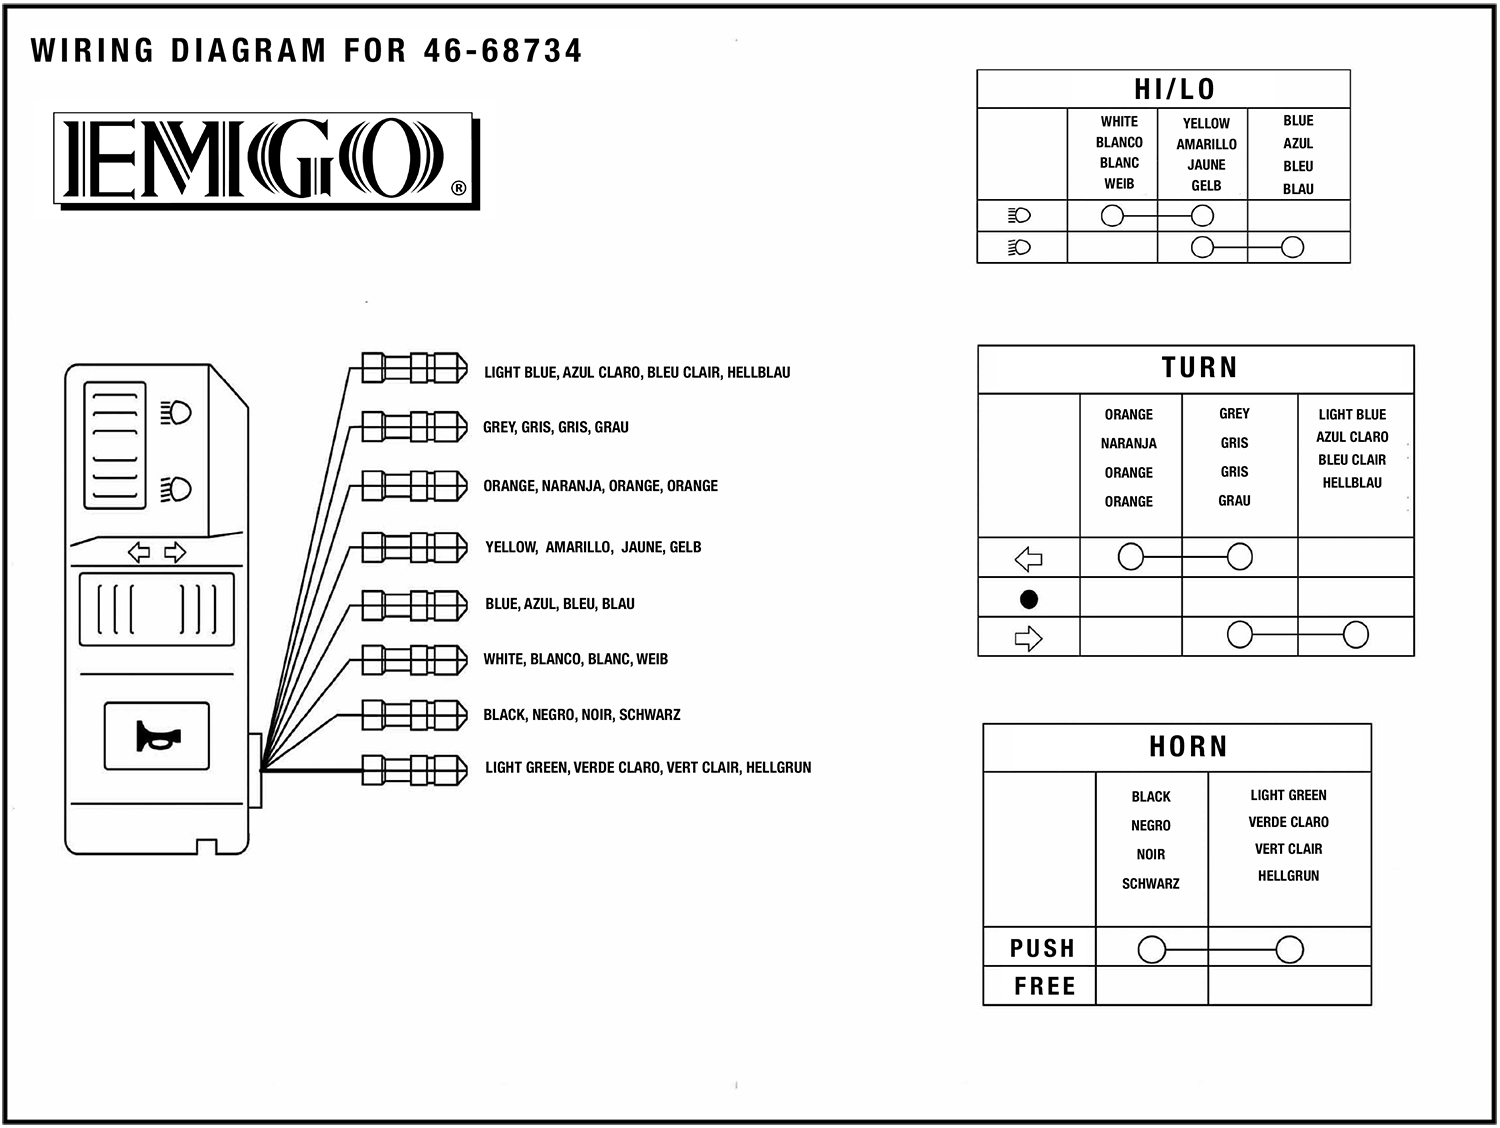 famous gl1200 wiring diagram pictures electrical diagram ideas rh itseo info Honda Goldwing Ignition Switch Wiring-Diagram 1987 Honda Goldwing Wiring-Diagram